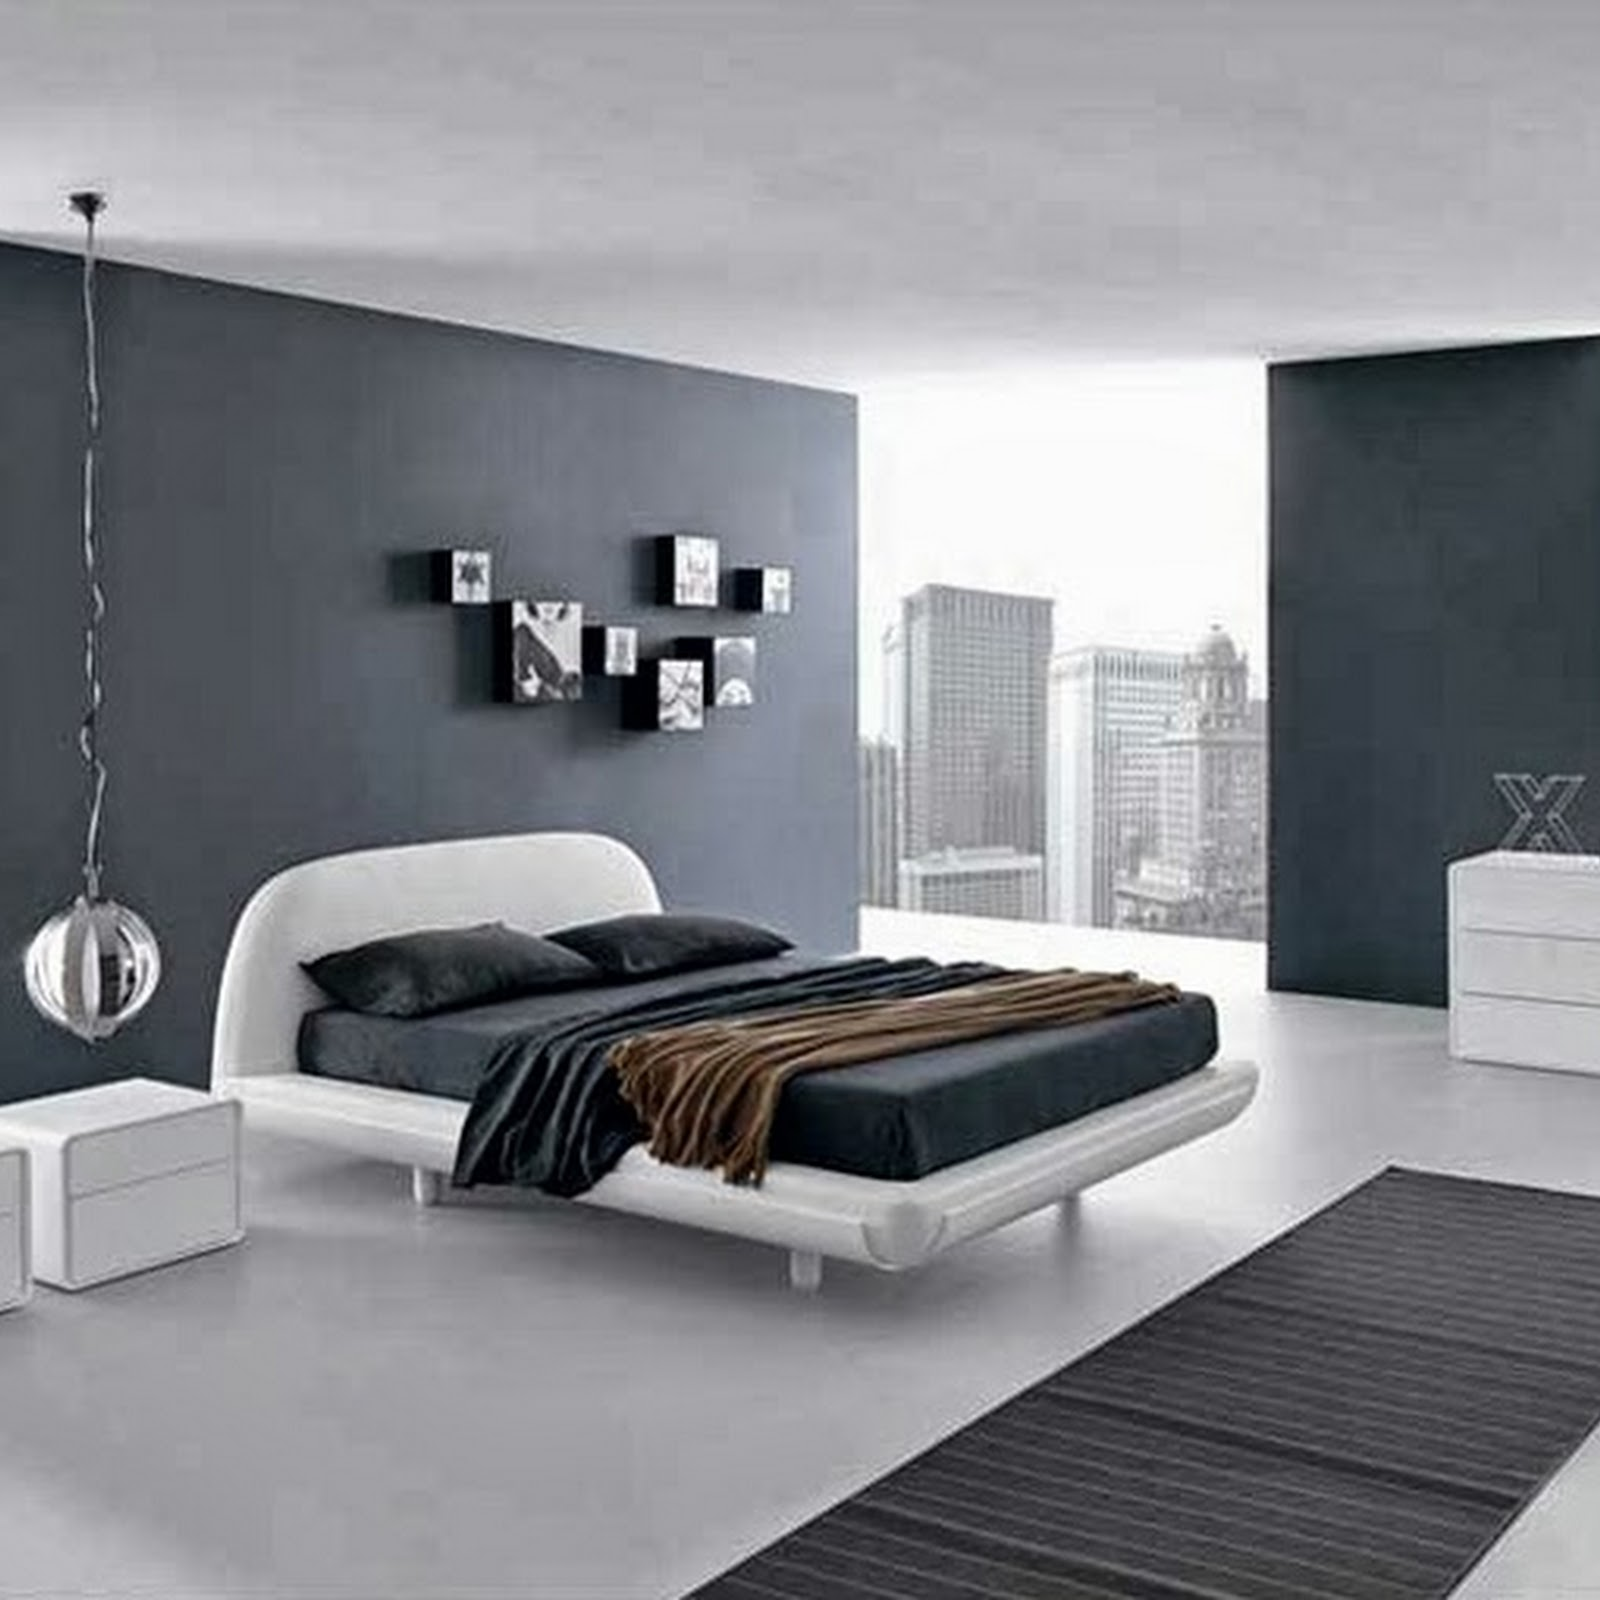 ... Paint Colors For Mens Bedroom Magazine. Bed Pillows Blanket Tables Lamp  Rug Cabinet Wall Accessories